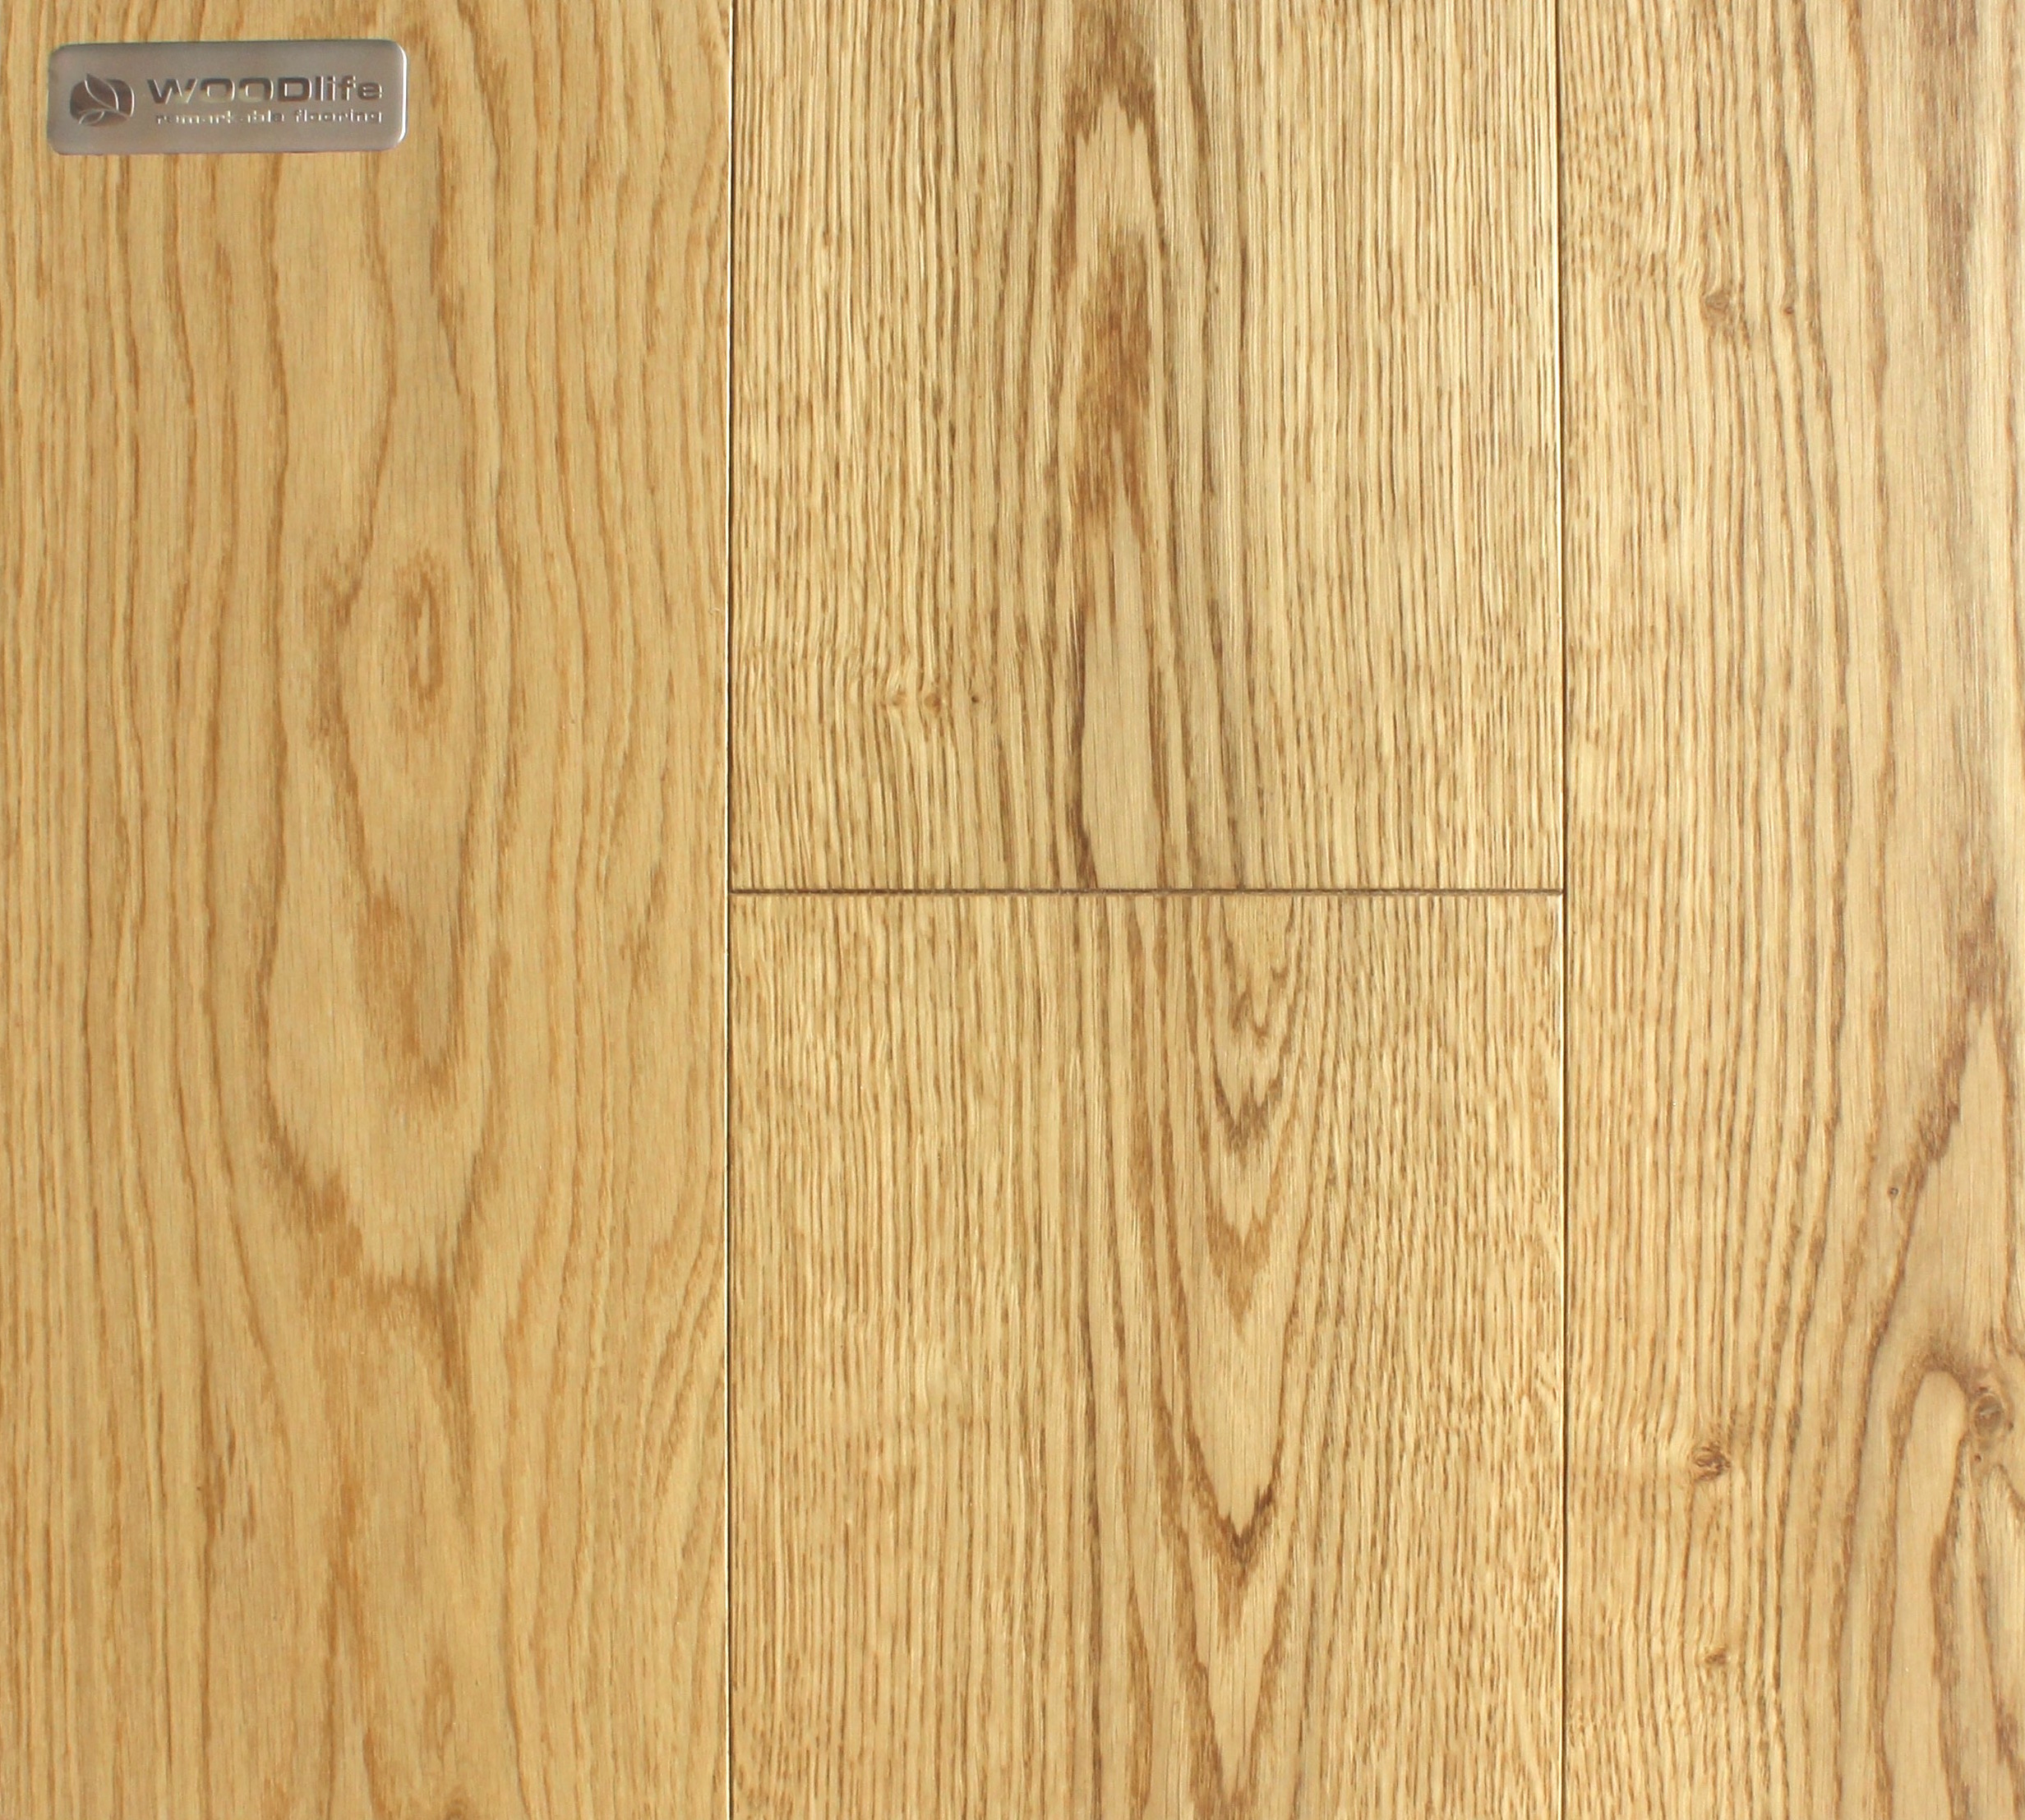 CLEAR LACQUERED - WHITE OAK